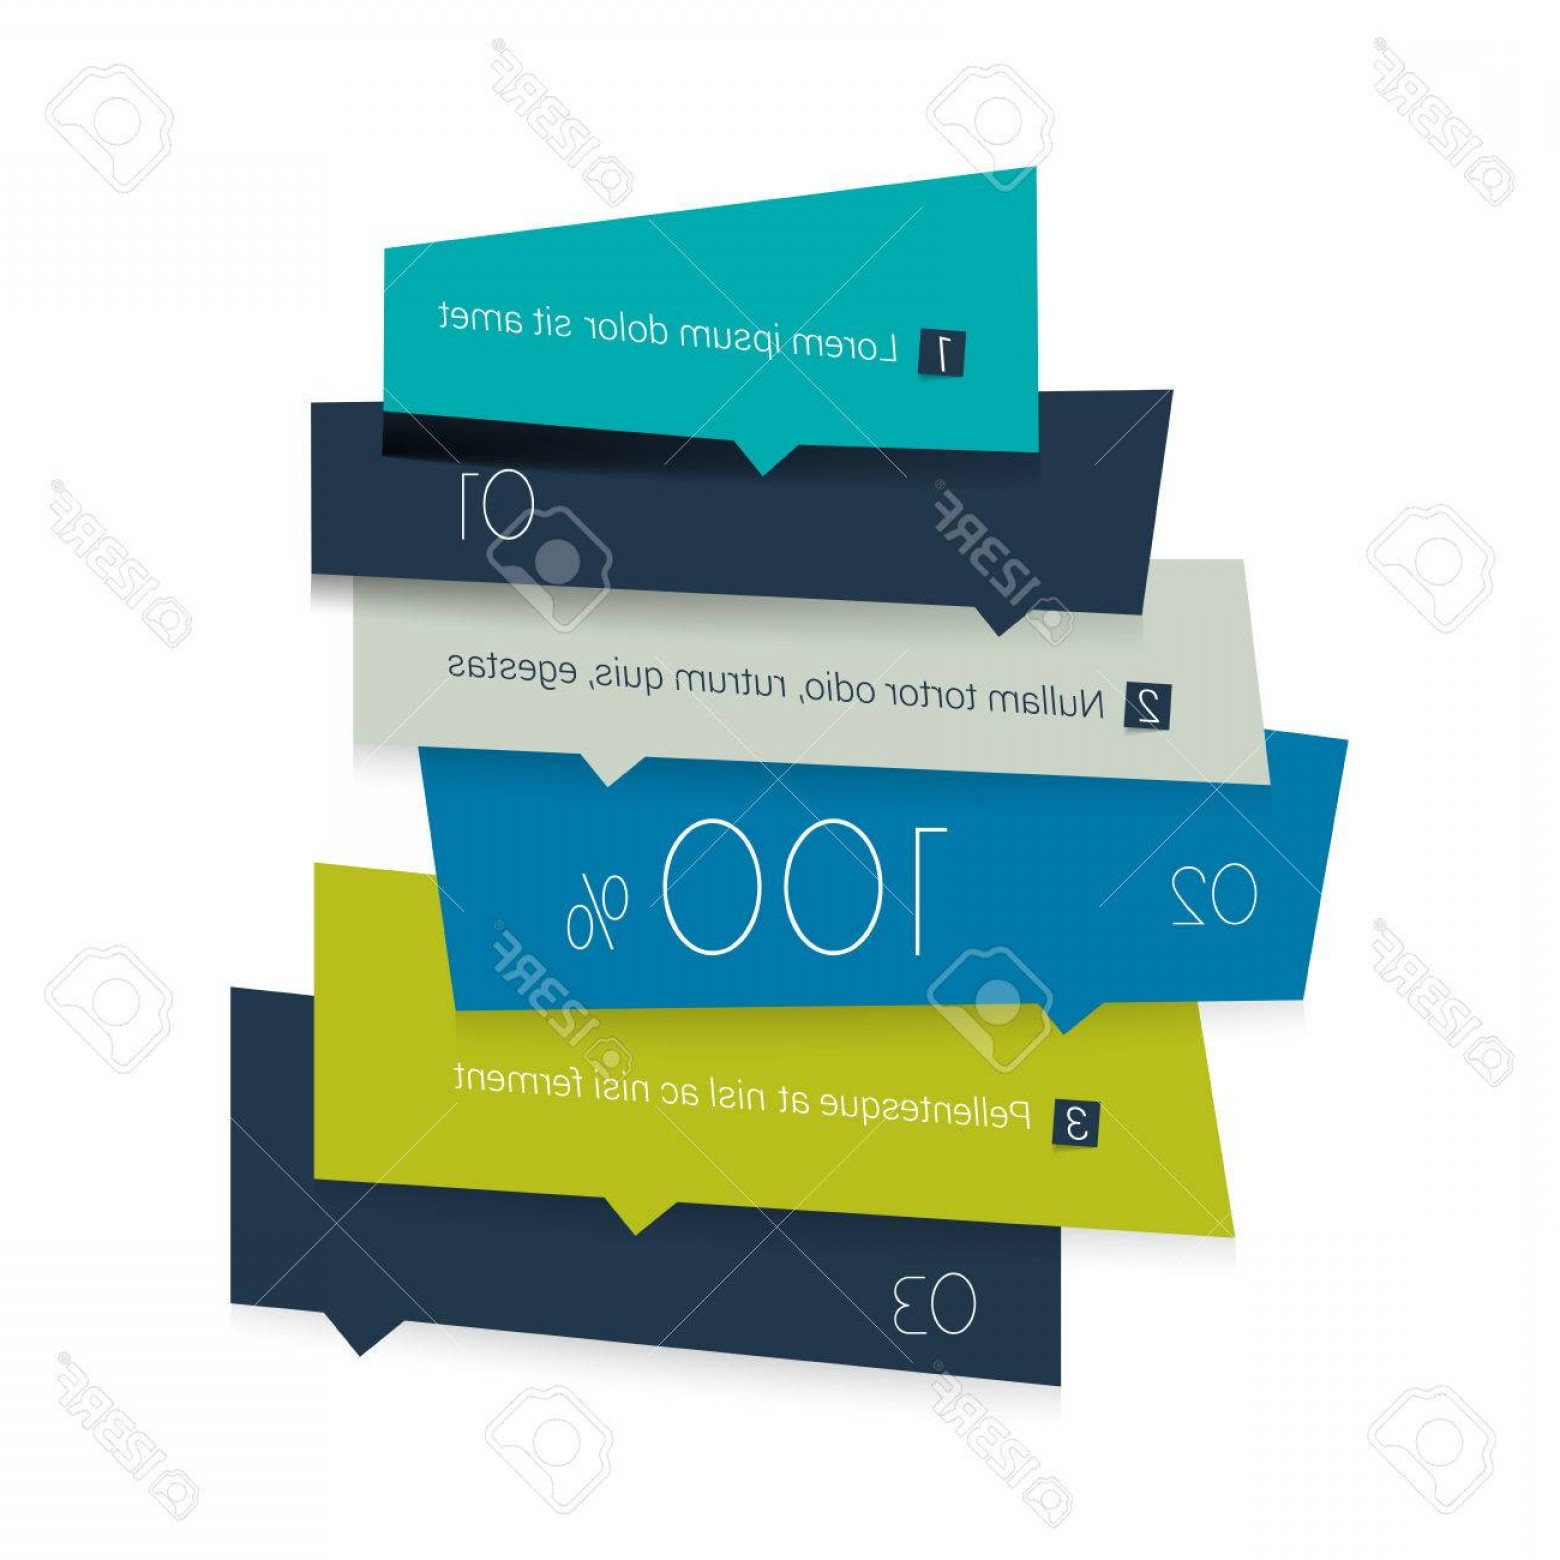 Numbered Tab Vectors In Blue: Photostock Vector Blue Tab Schedule Square Banner Template Minimalistic Vector Design Infographic